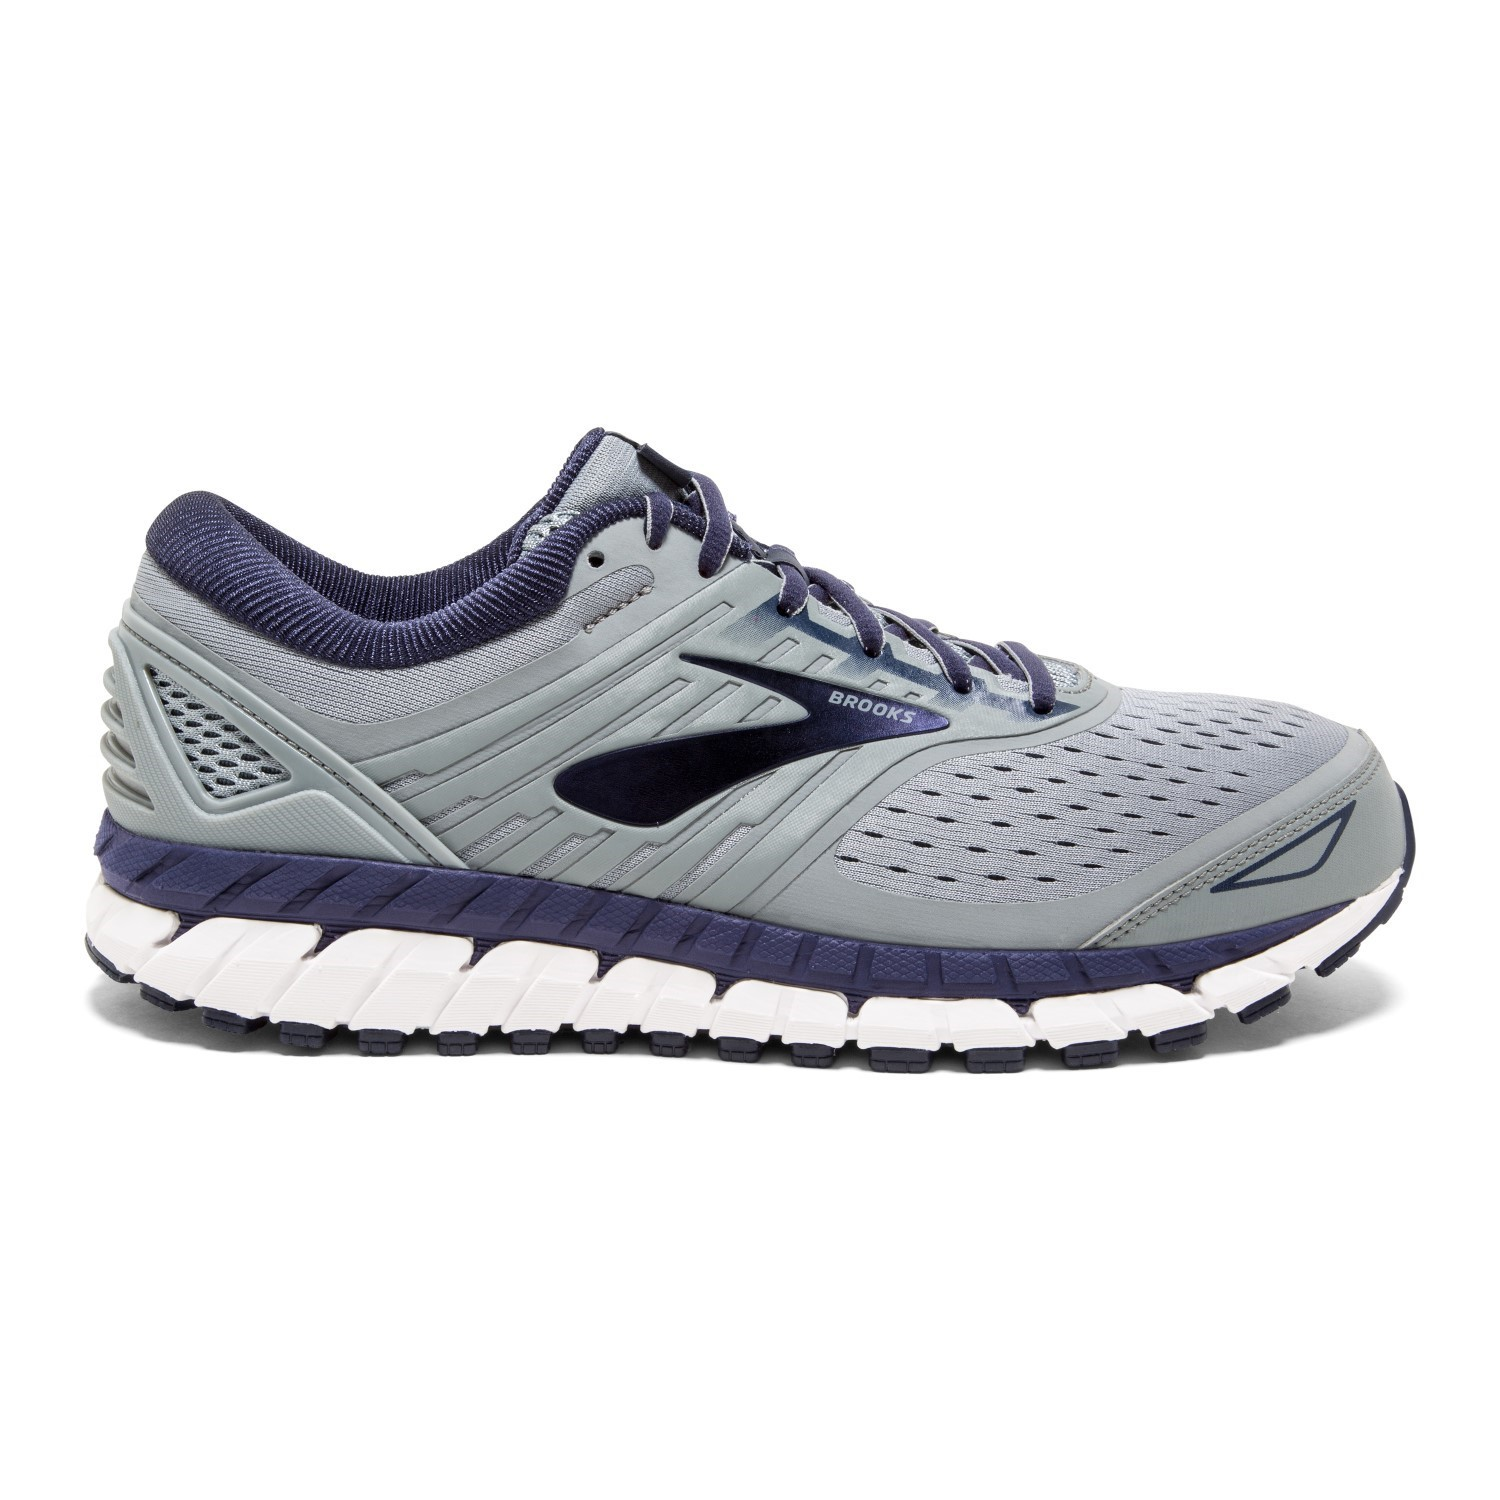 e3d0bd3220f Brooks Beast 18 - Mens Running Shoes - Grey Navy White